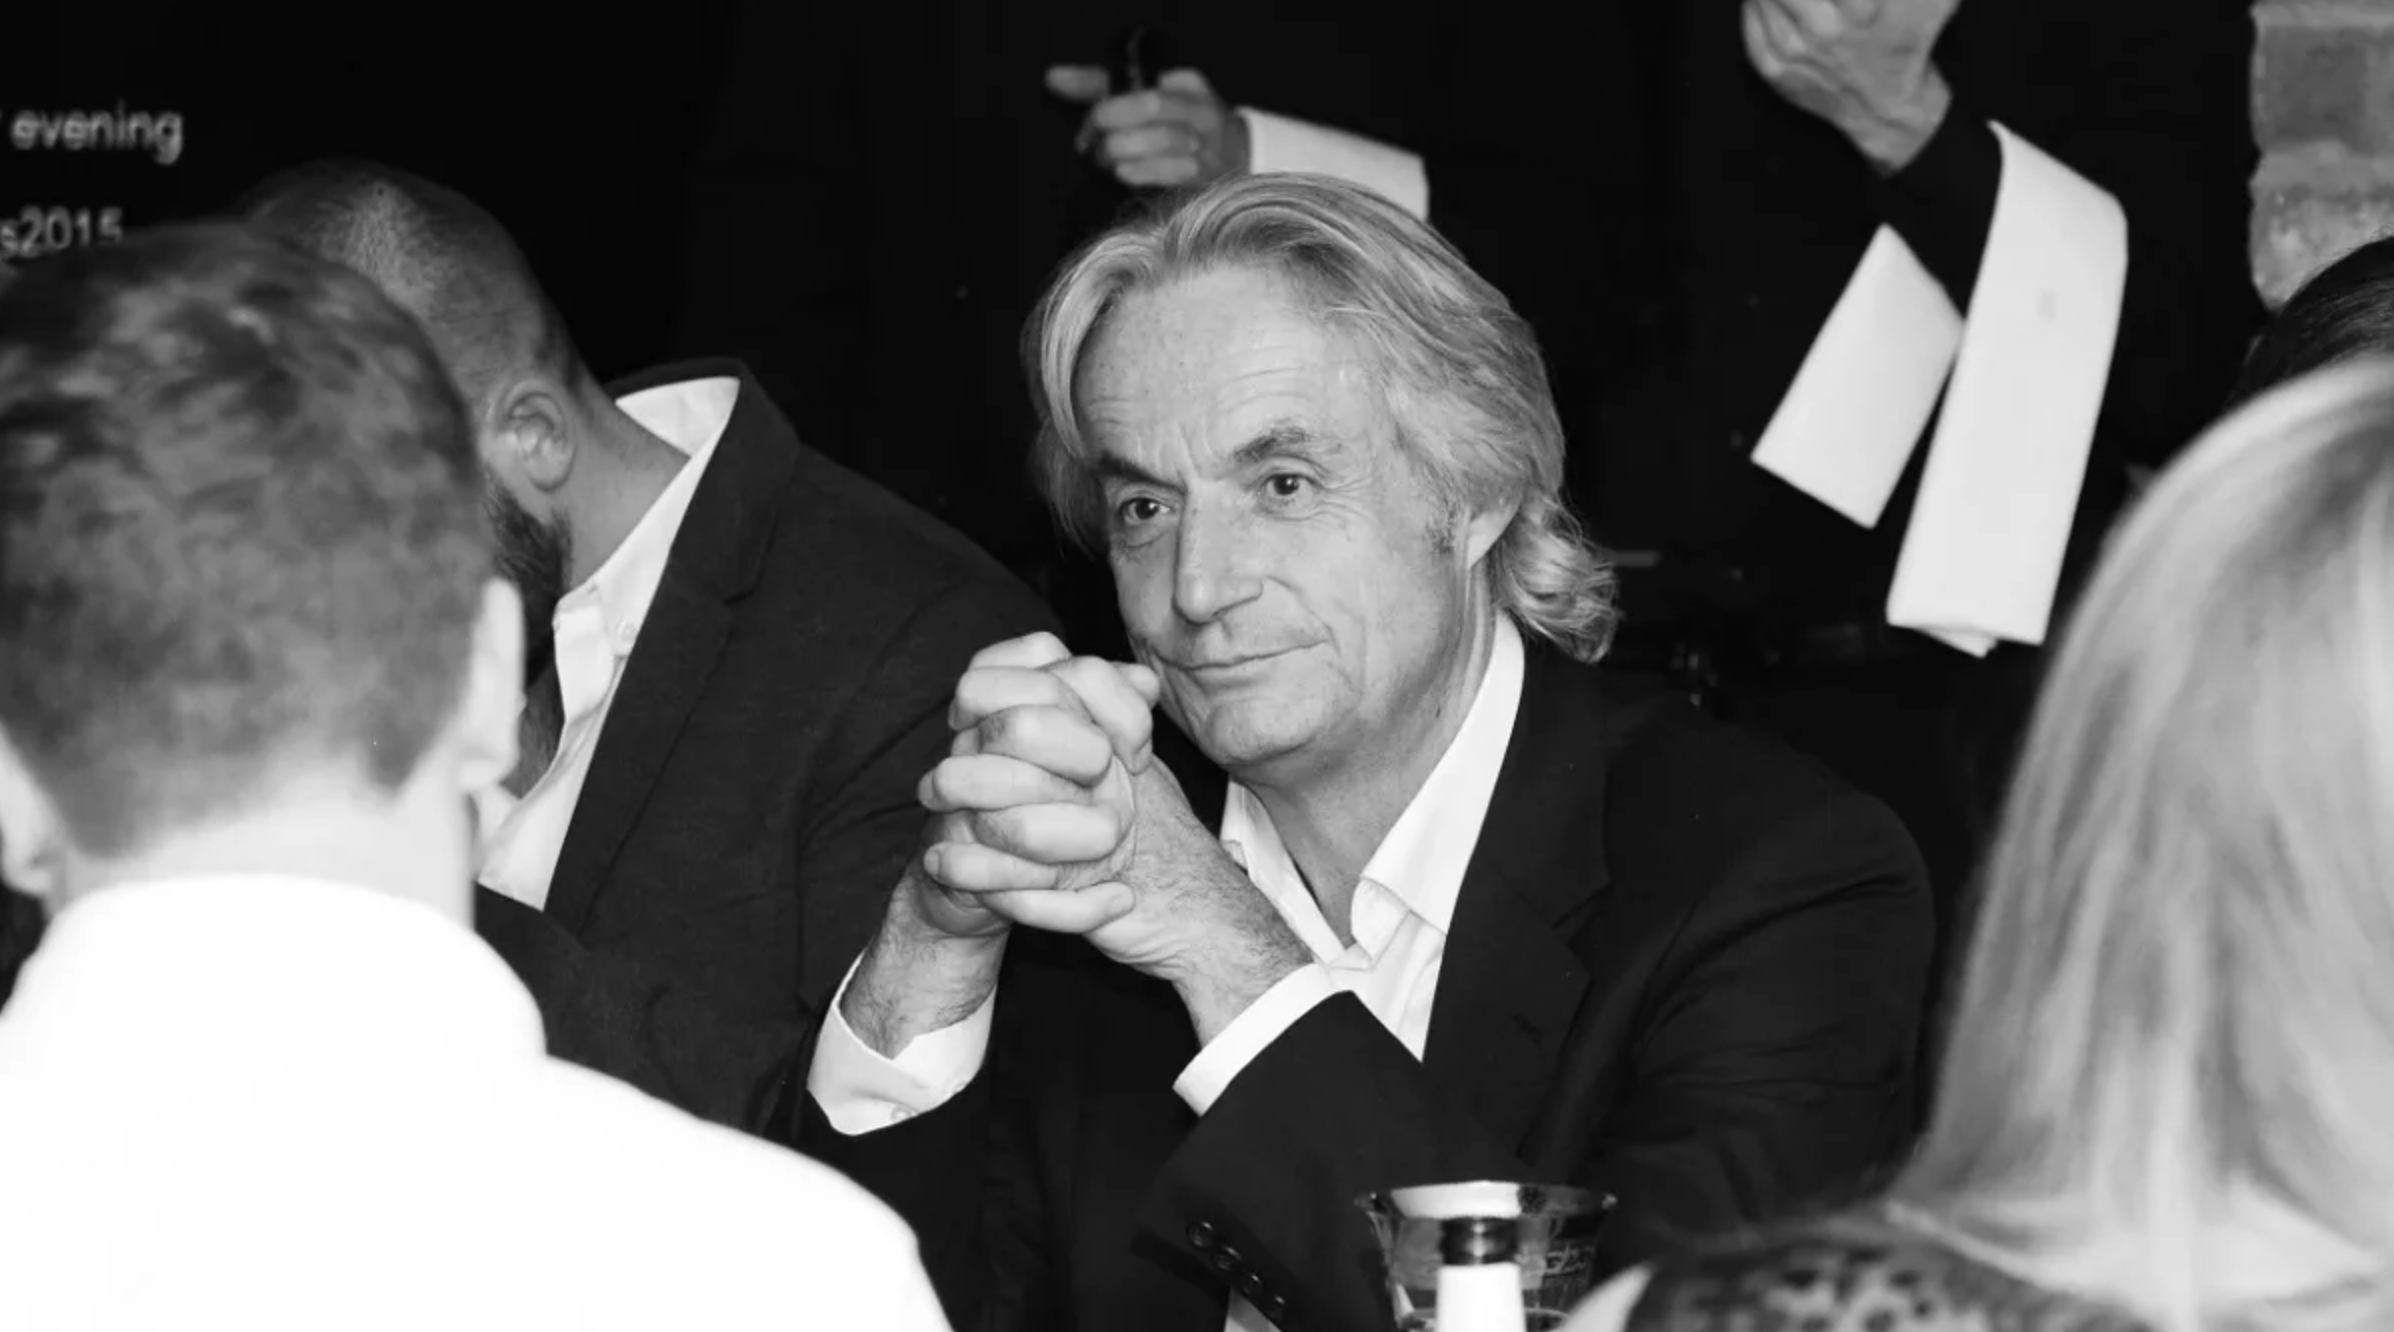 Peter Norris listening at a black tie event